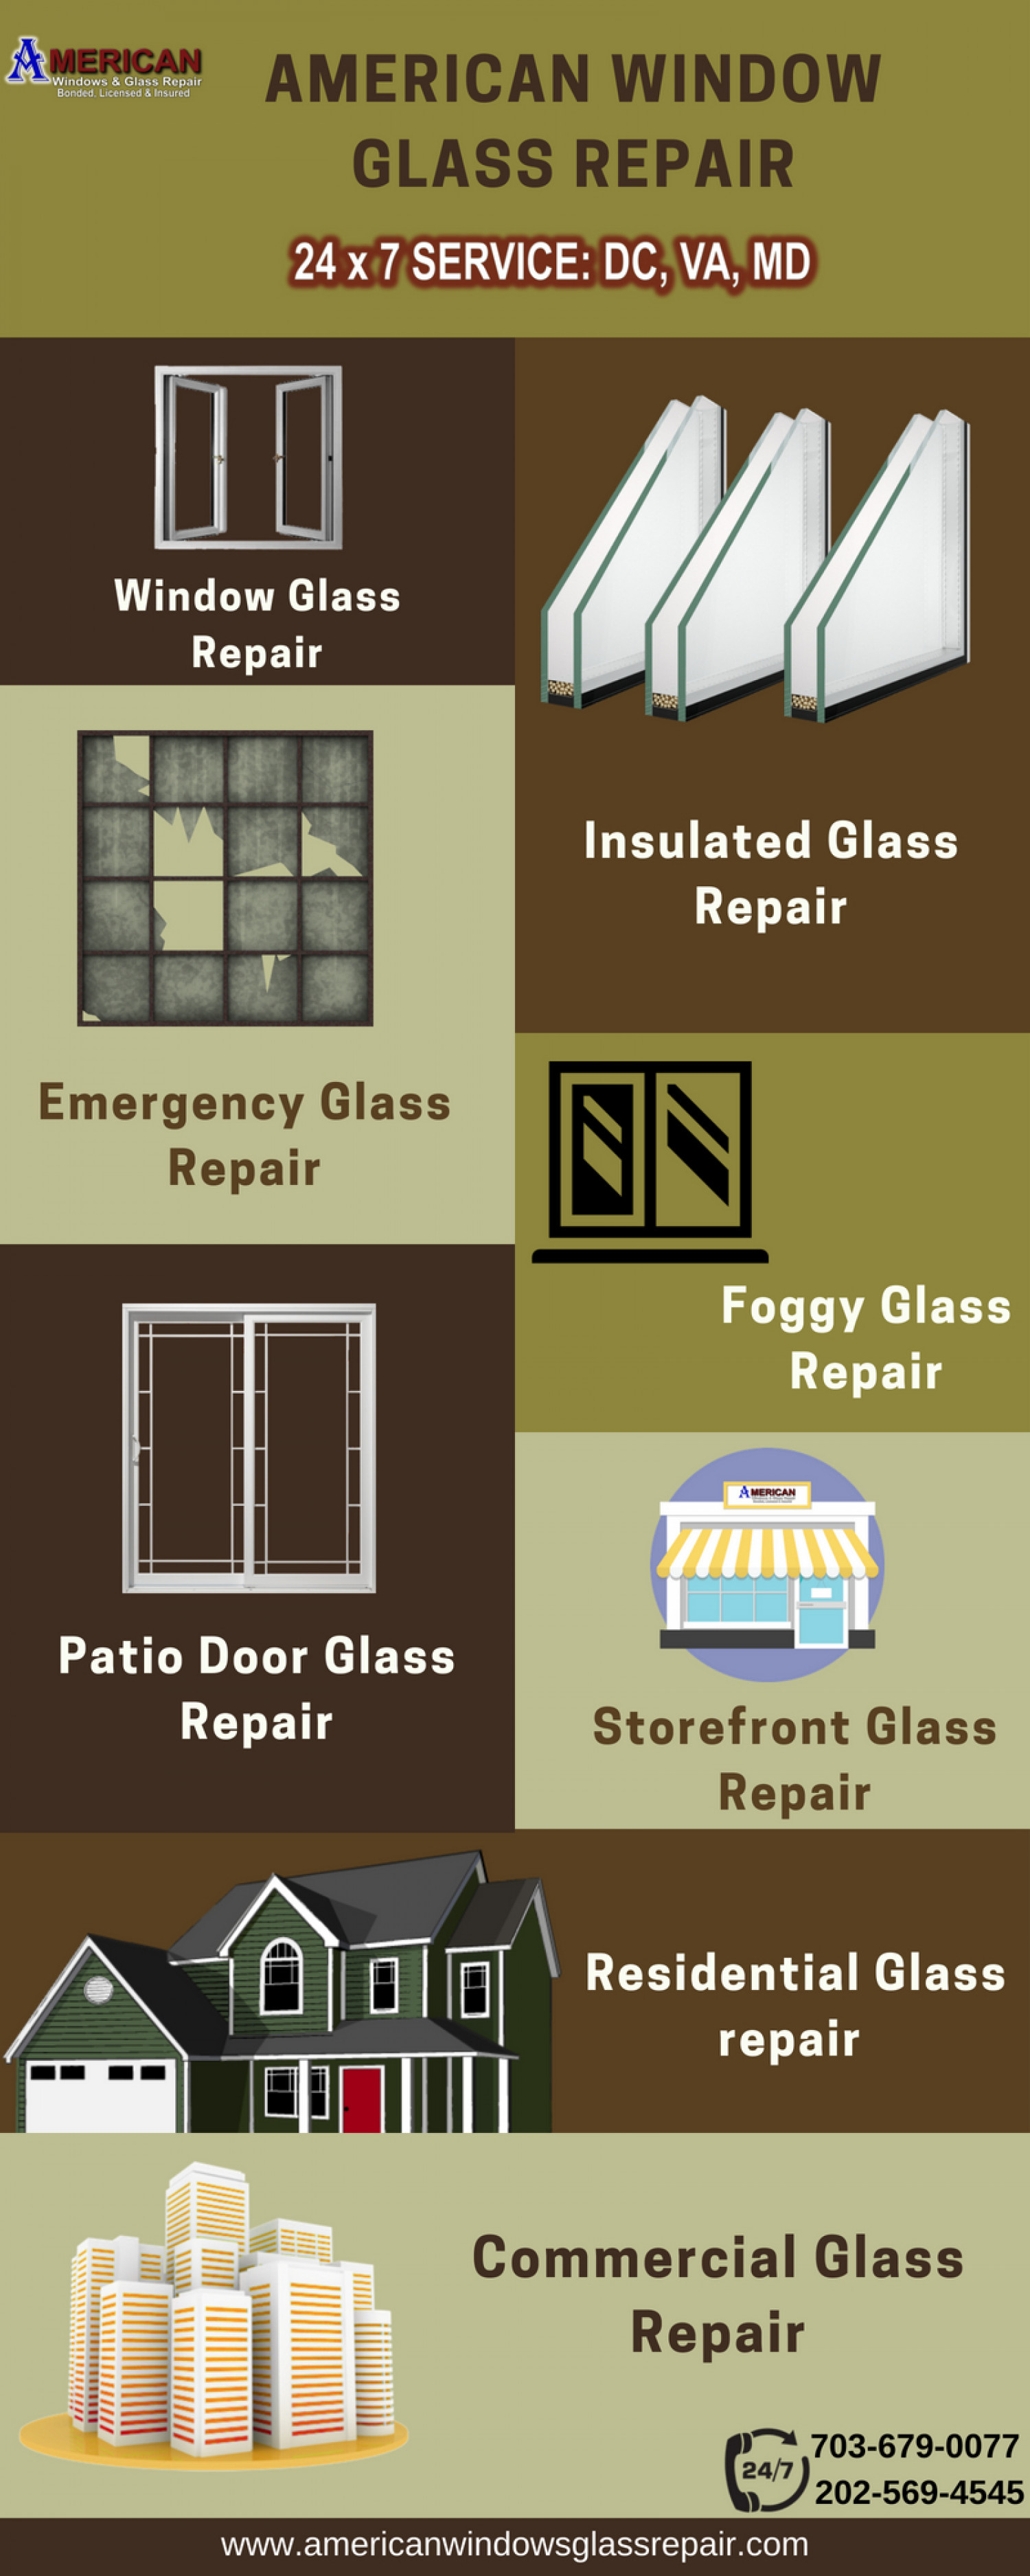 Emergency Glass Repair Riverdale MD | American Window Glass Repair Infographic